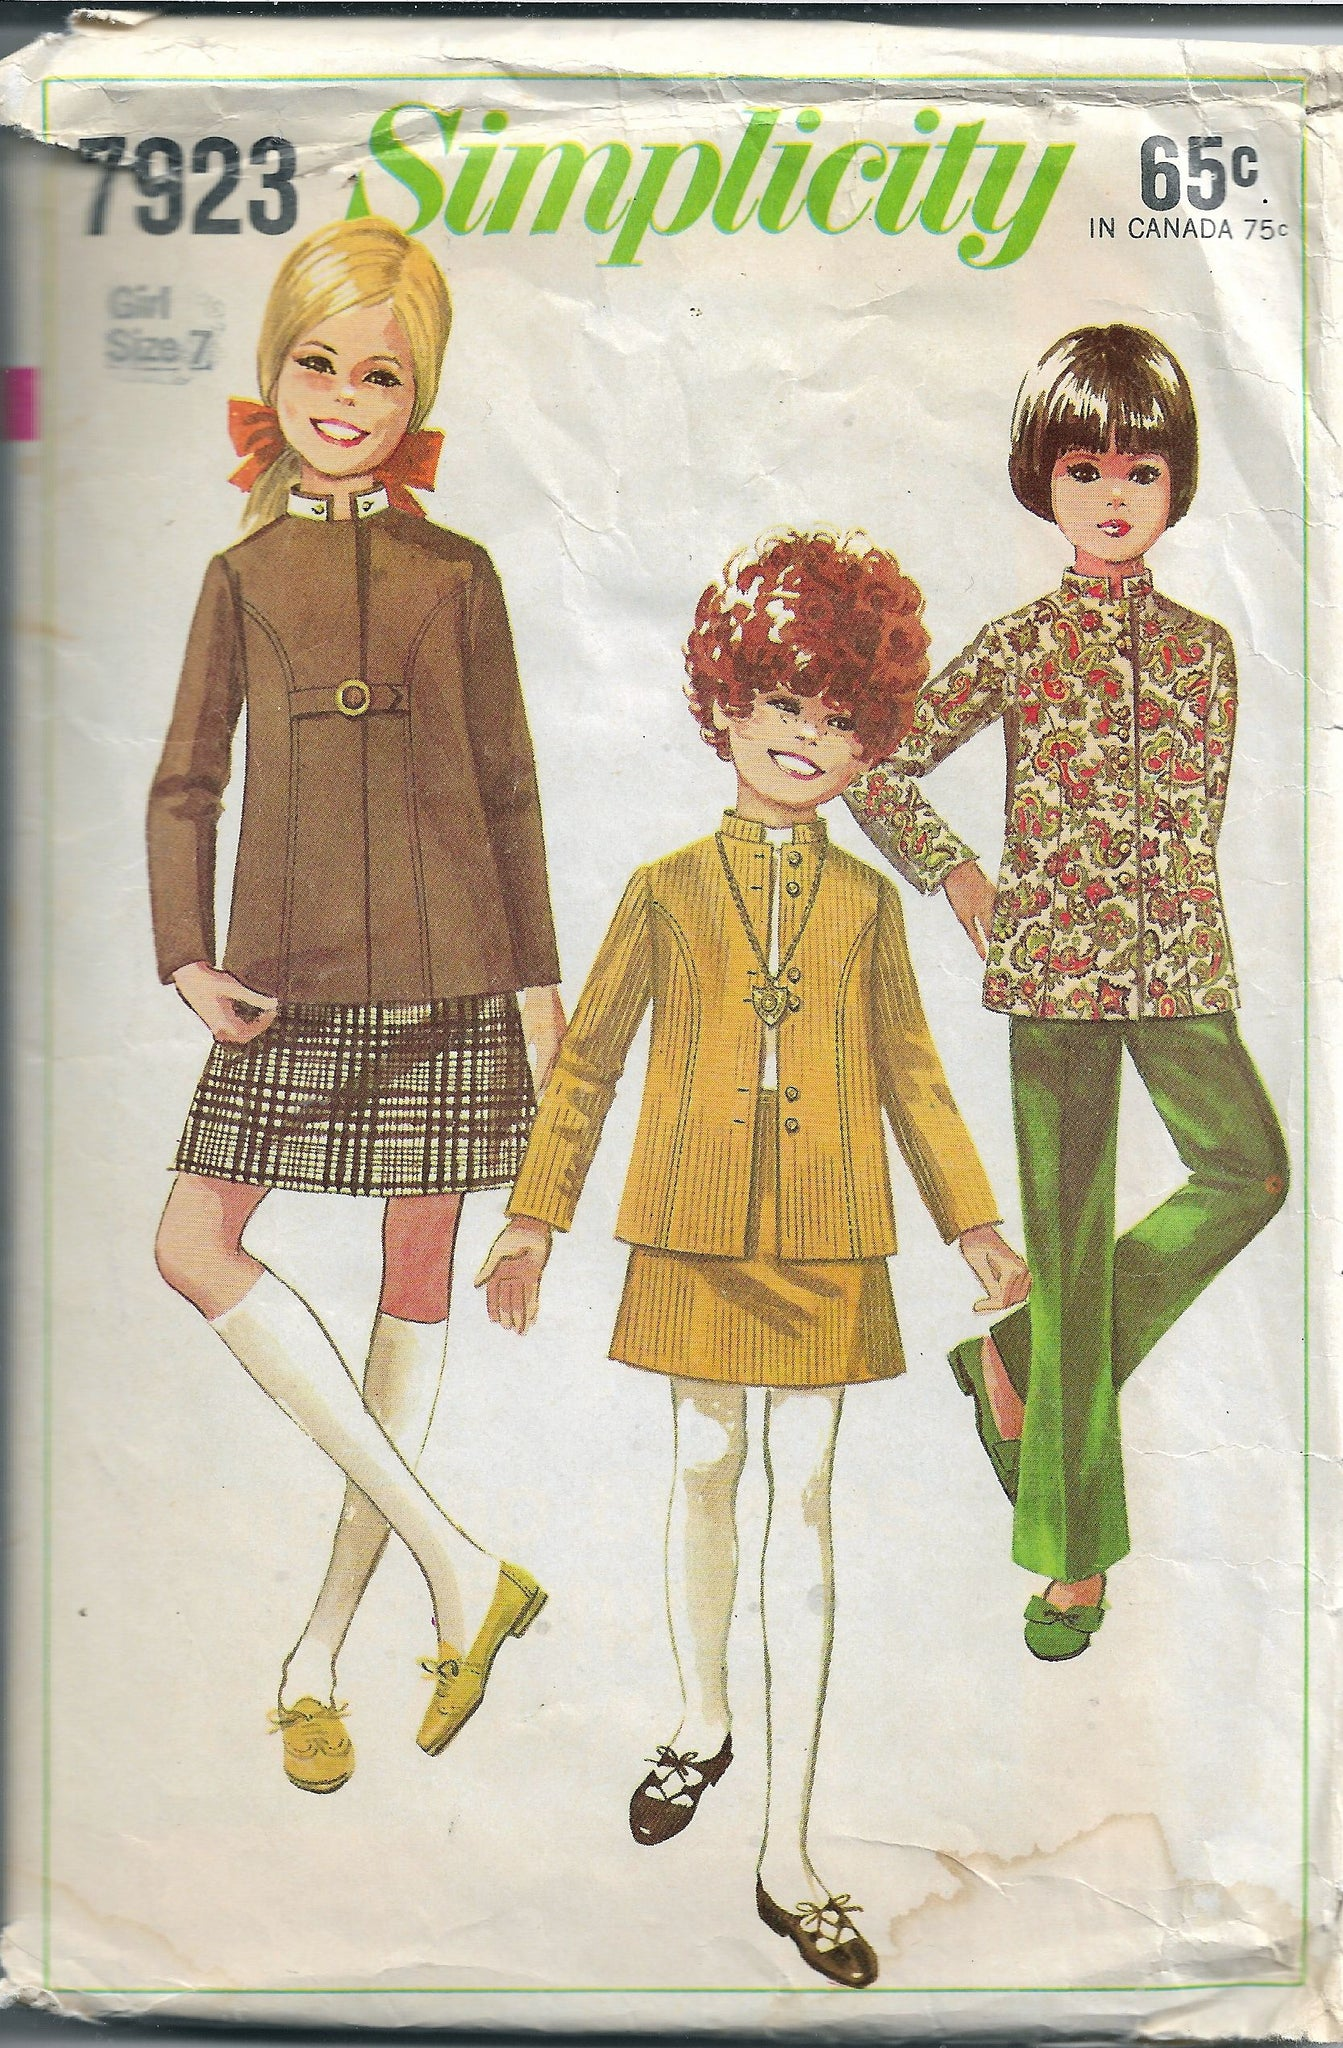 Simplicity 7923 Vintage Sewing Pattern 1960s Girls Bell Bottom Pants Jacket - VintageStitching - Vintage Sewing Patterns